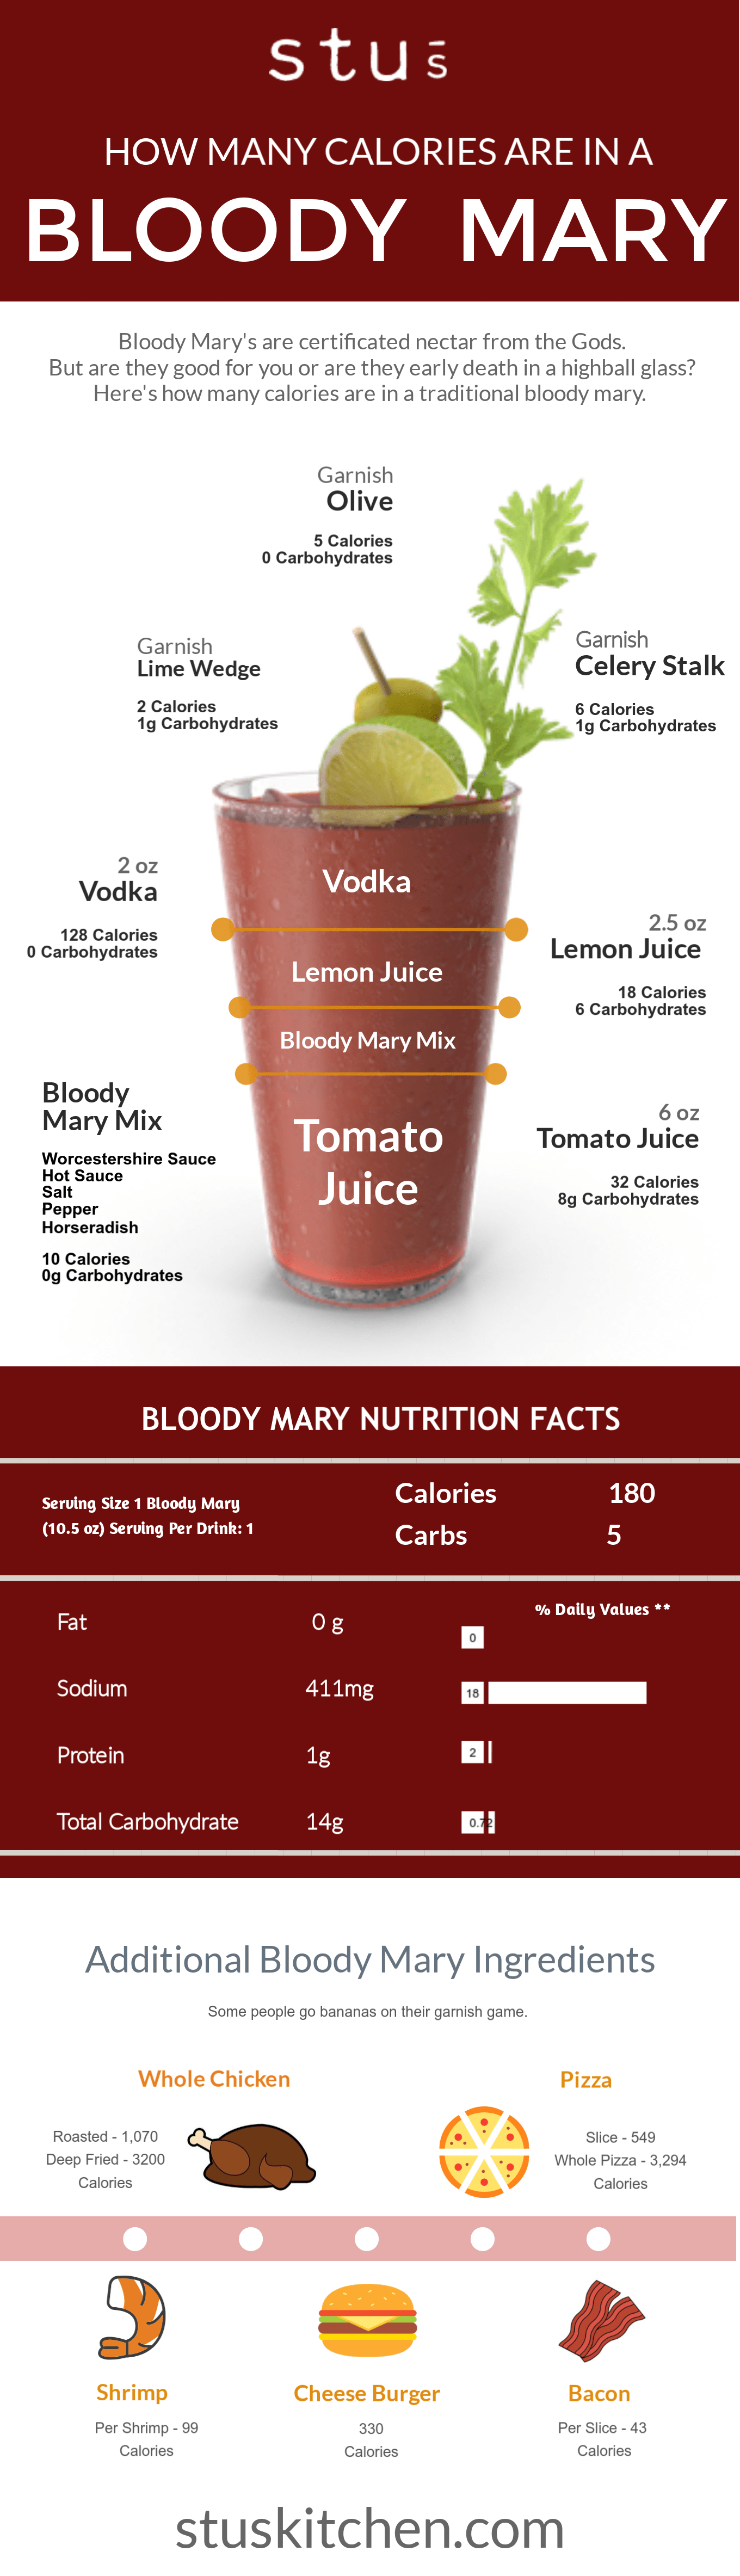 bloody-mary-calories-infogrpahic-plaza